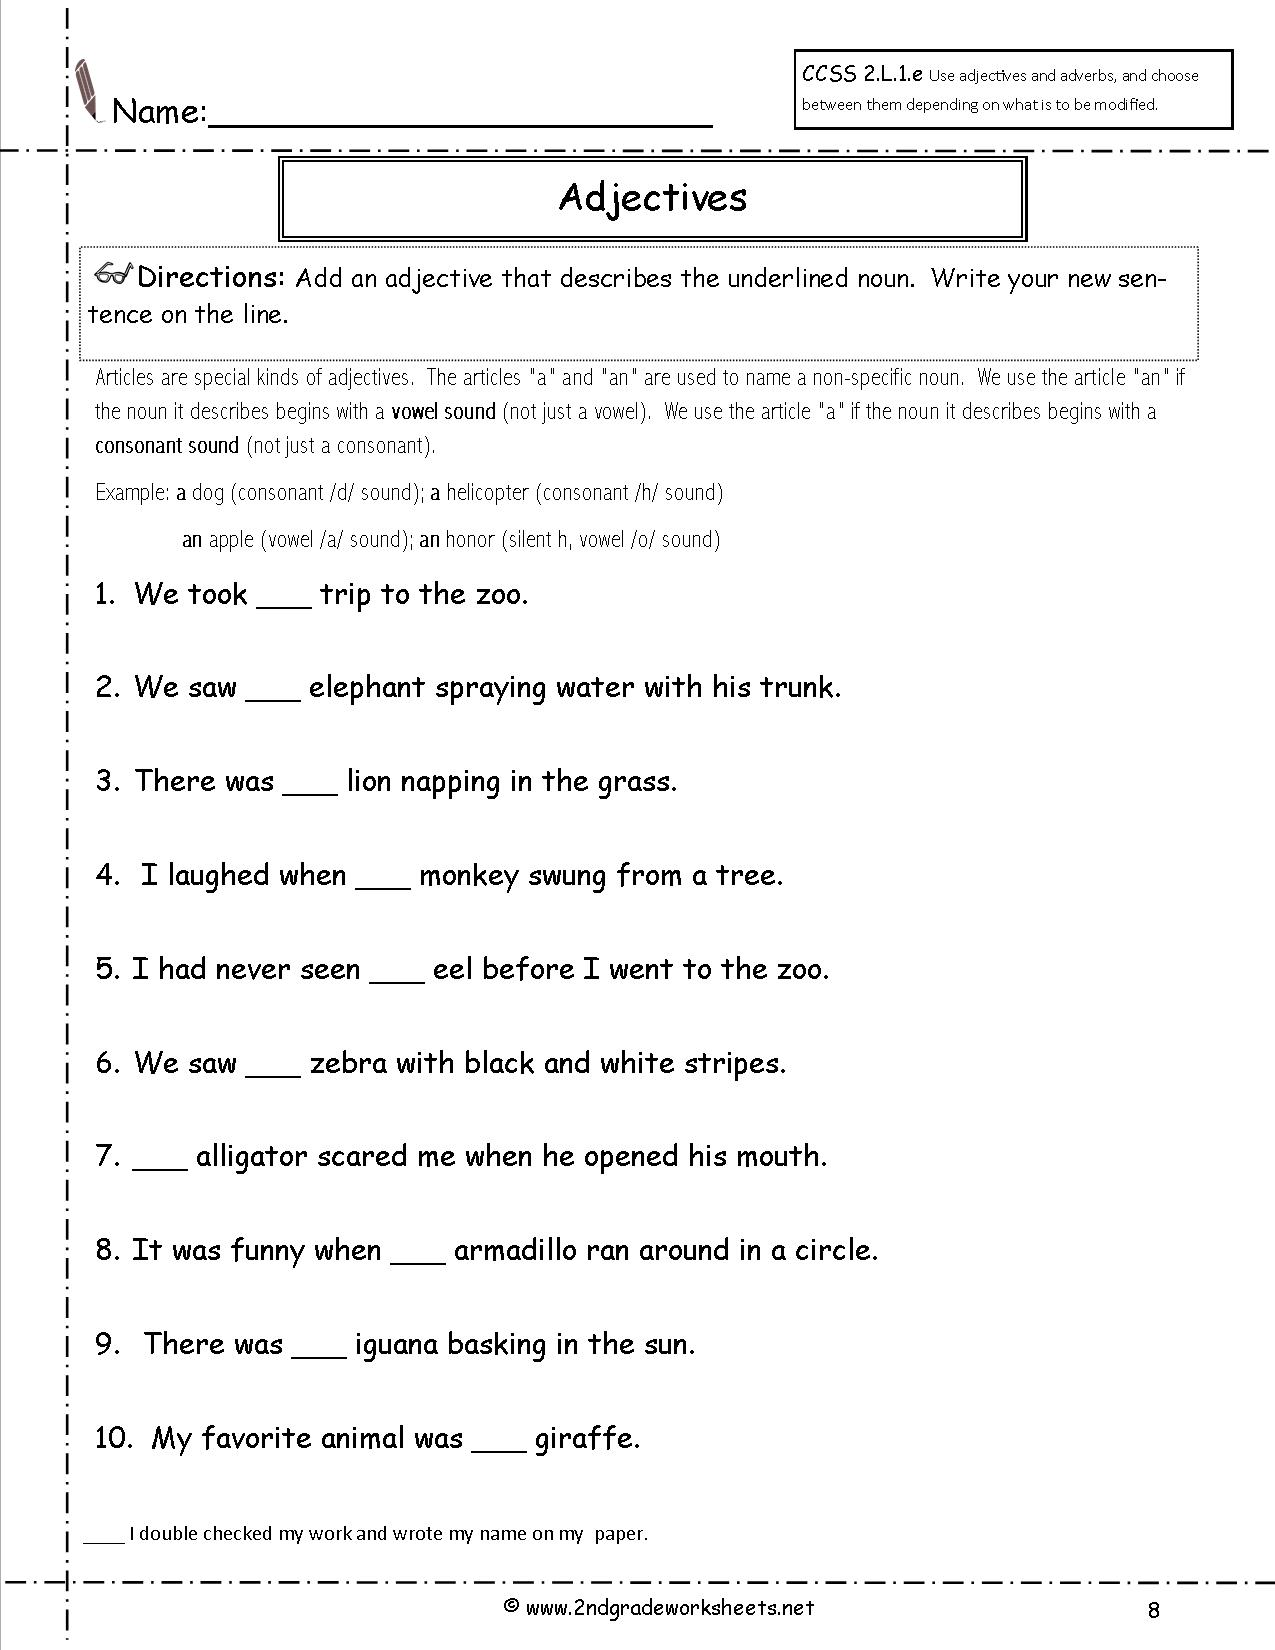 Worksheets 2nd Grade Grammar Worksheets Free free using adjectives worksheets a or an worksheet